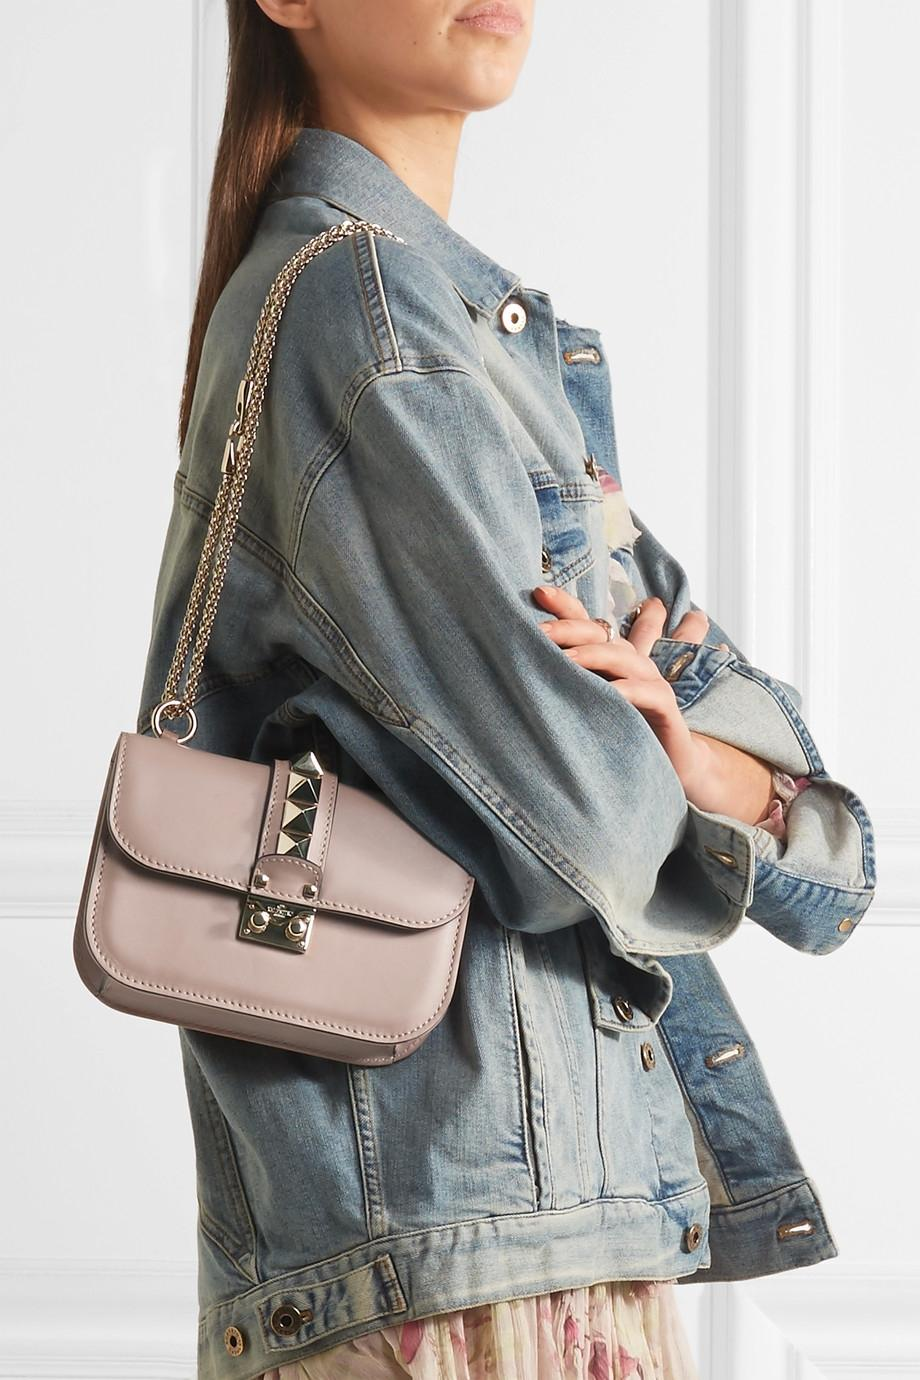 Valentino Leather Mini Bag From China For Sale Cheap Sale Sast Low Shipping Fee Sale Online Best Sale cp9EJXO